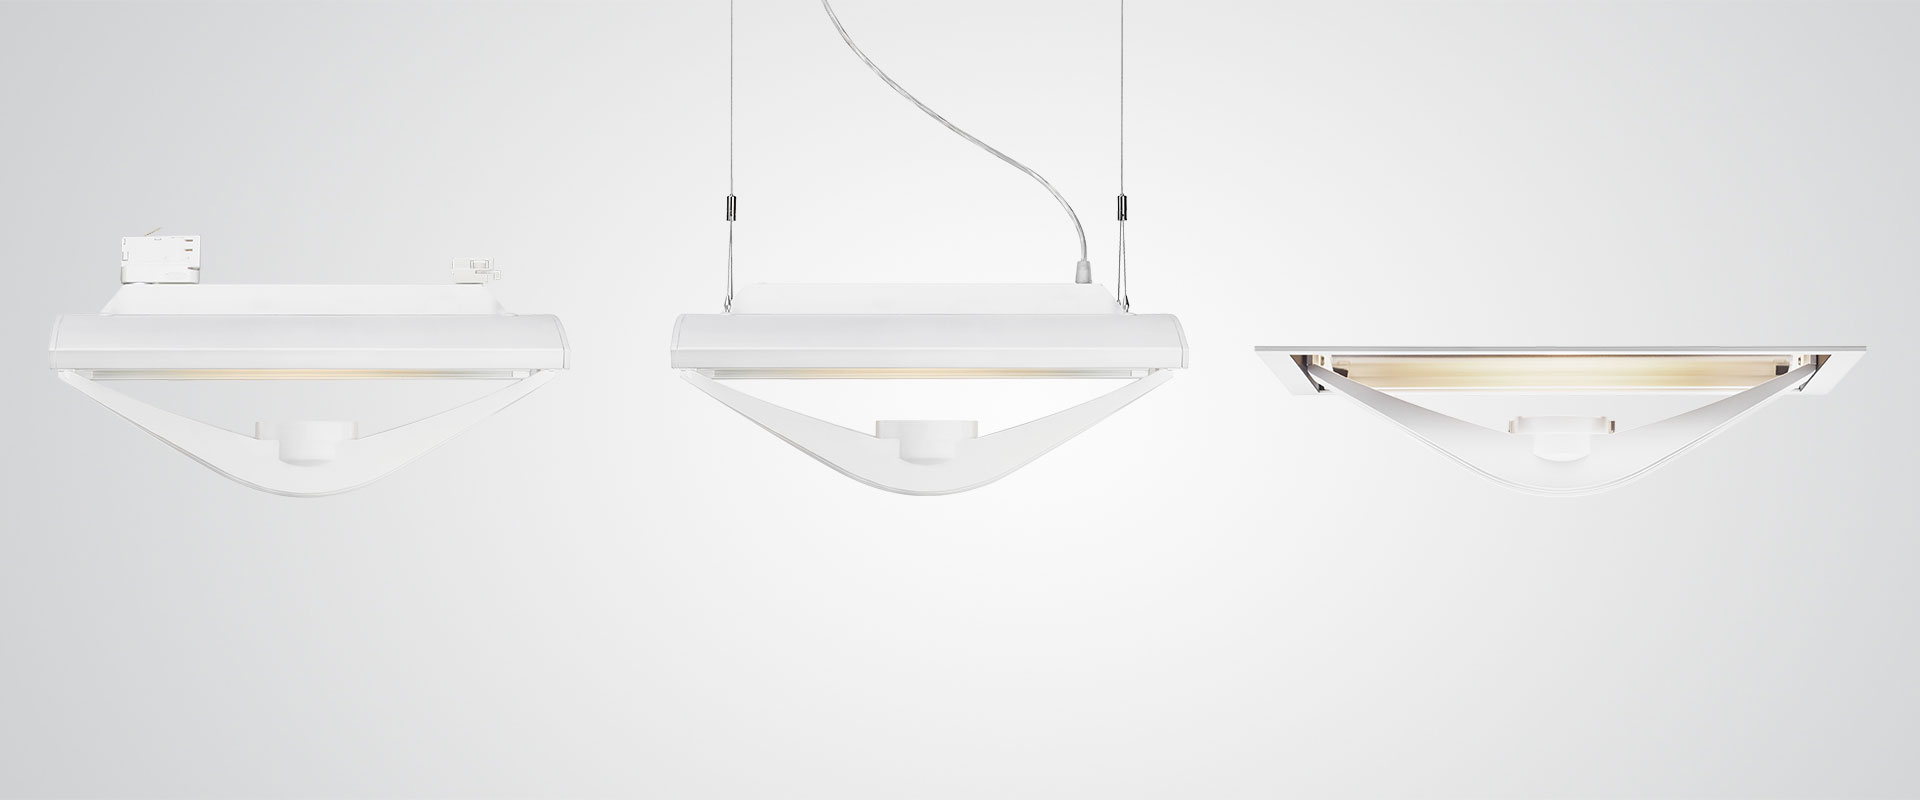 Mido LED & Mido LED - Products - TRILUX Simplify Your Light